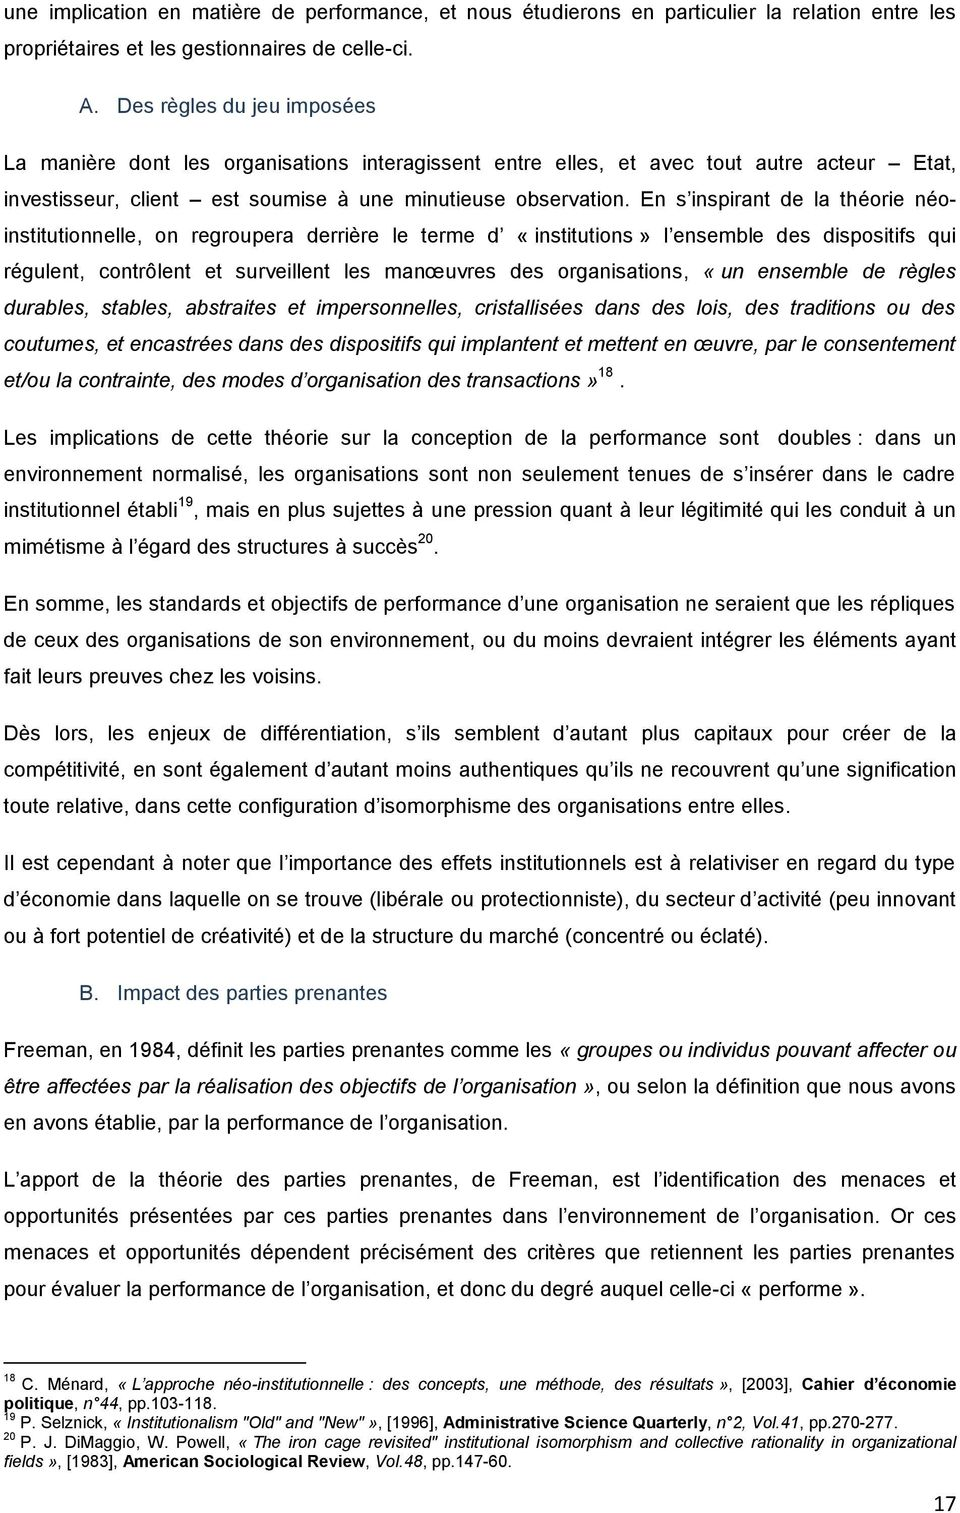 En s inspirant de la théorie néoinstitutionnelle, on regroupera derrière le terme d «institutions» l ensemble des dispositifs qui régulent, contrôlent et surveillent les manœuvres des organisations,